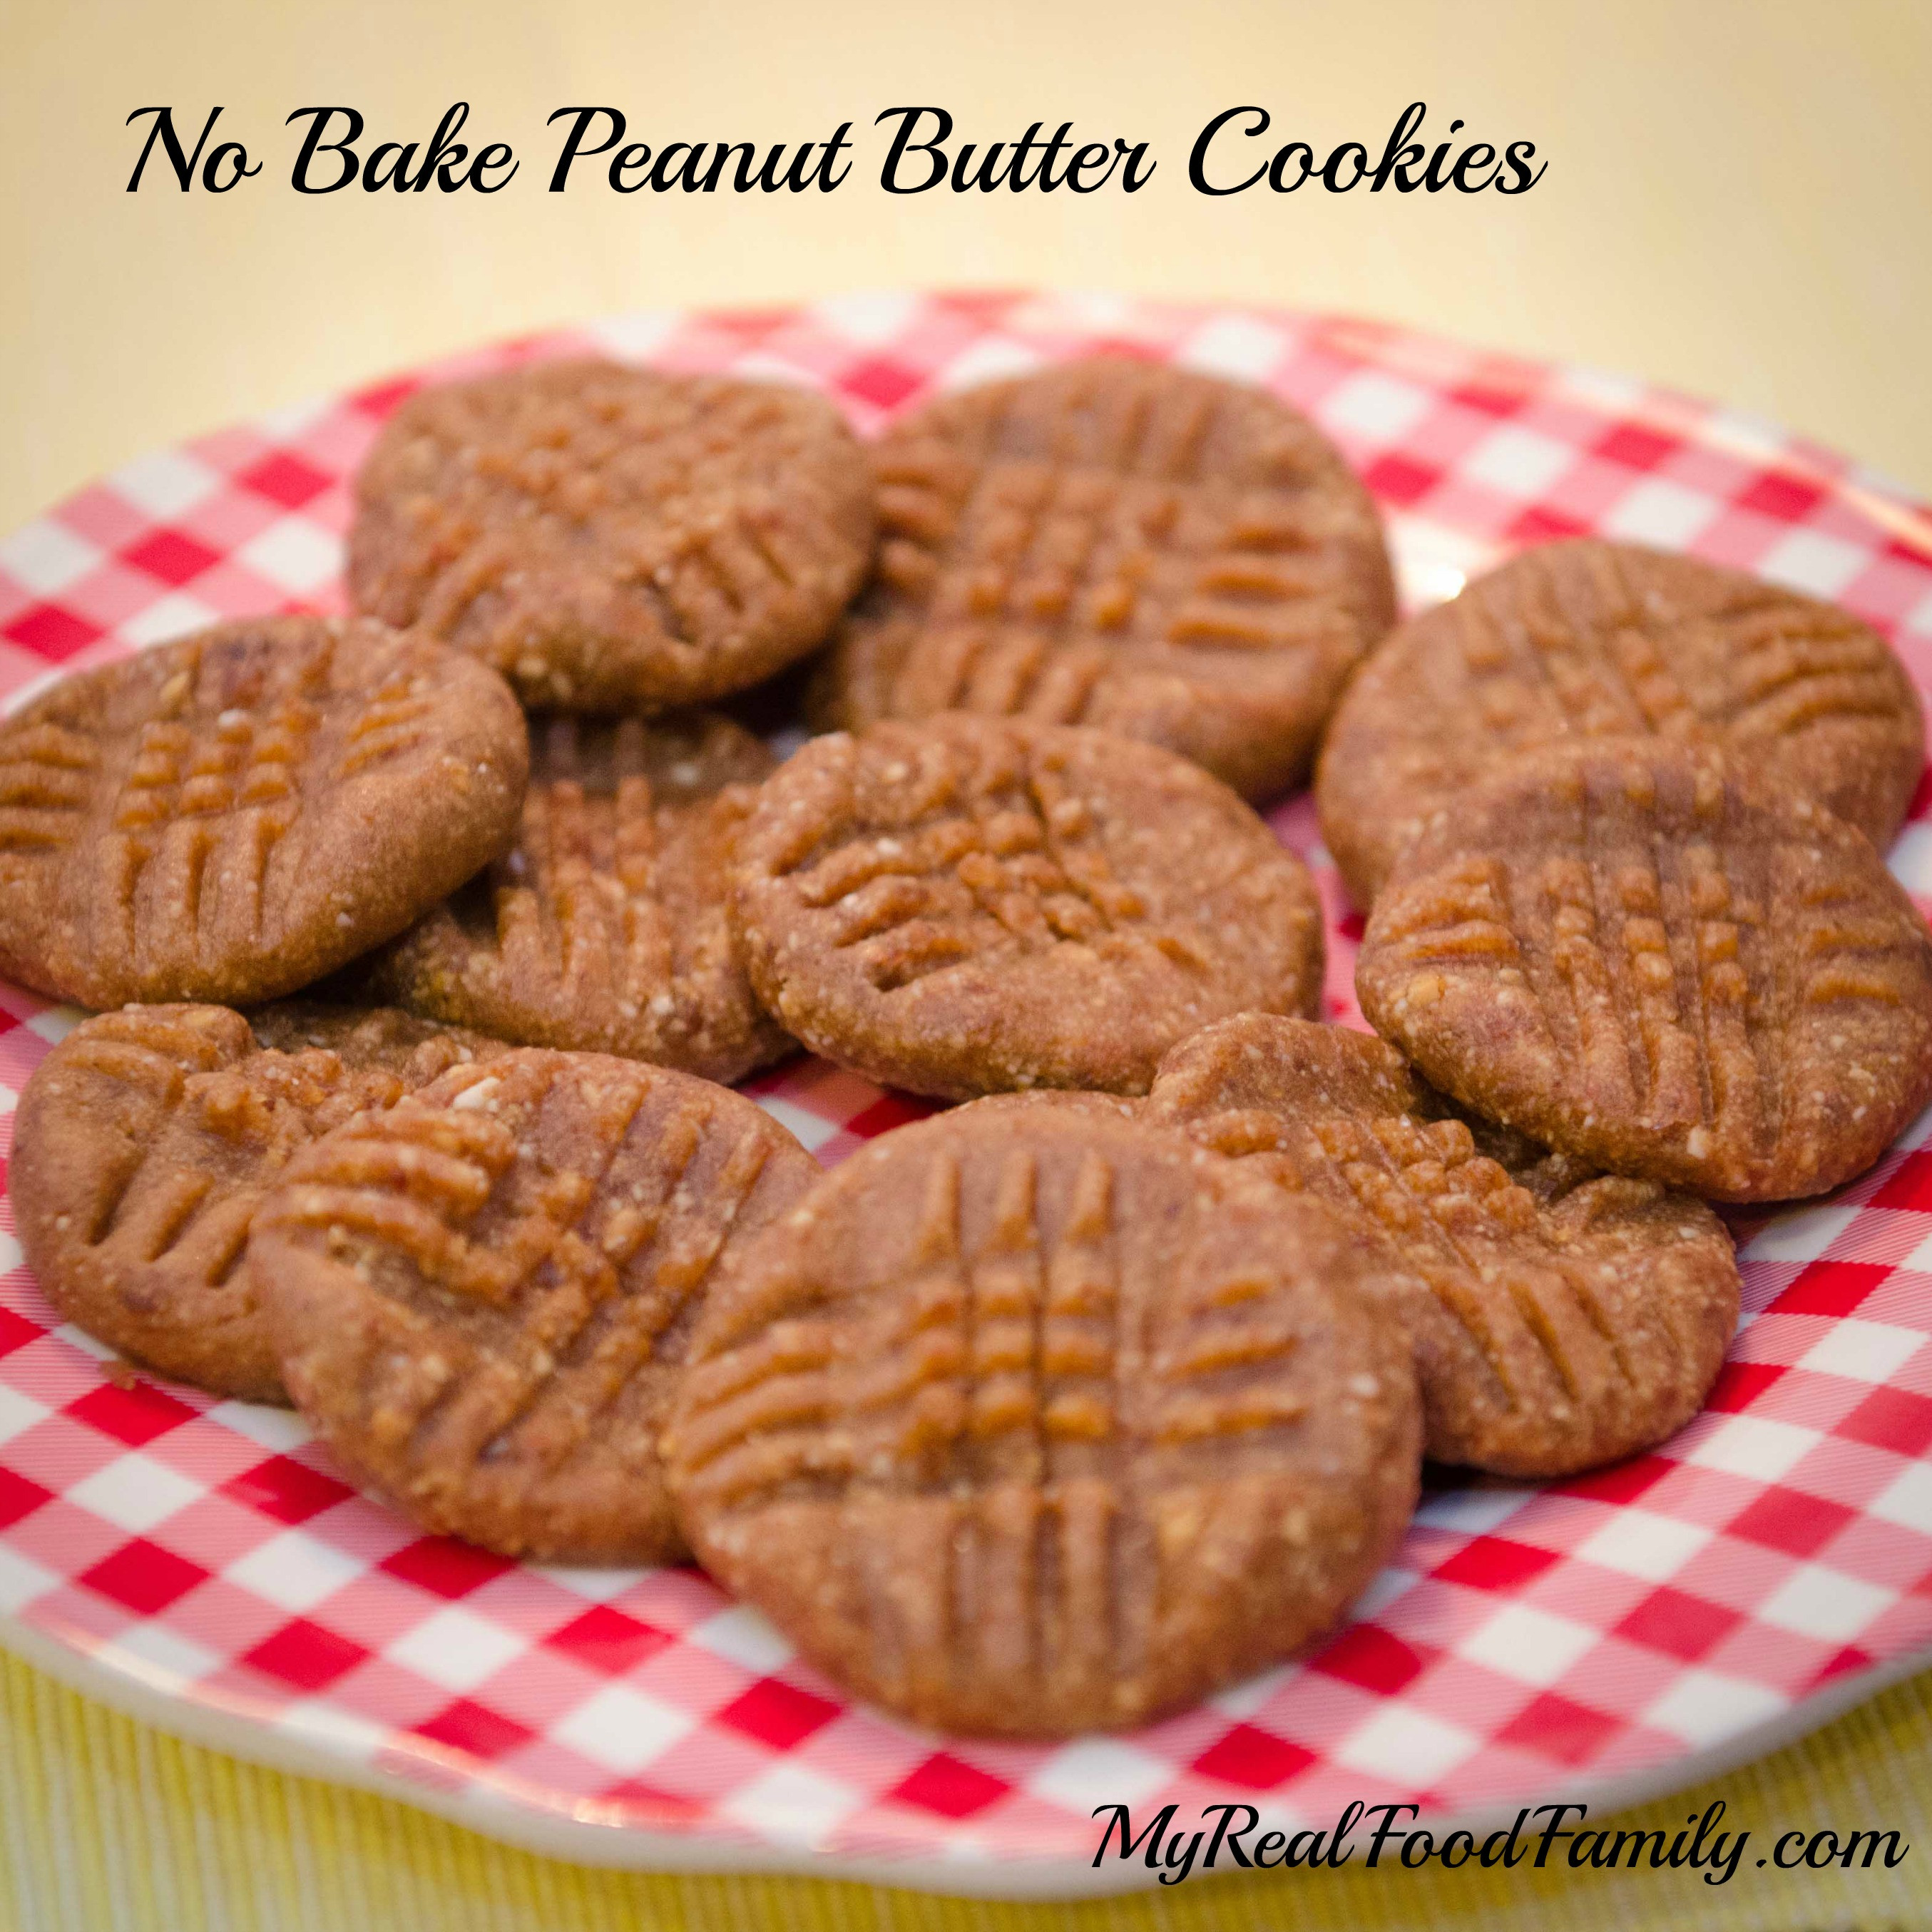 Healthy No Bake Cookies Without Peanut Butter  No Bake Peanut Butter Cookies